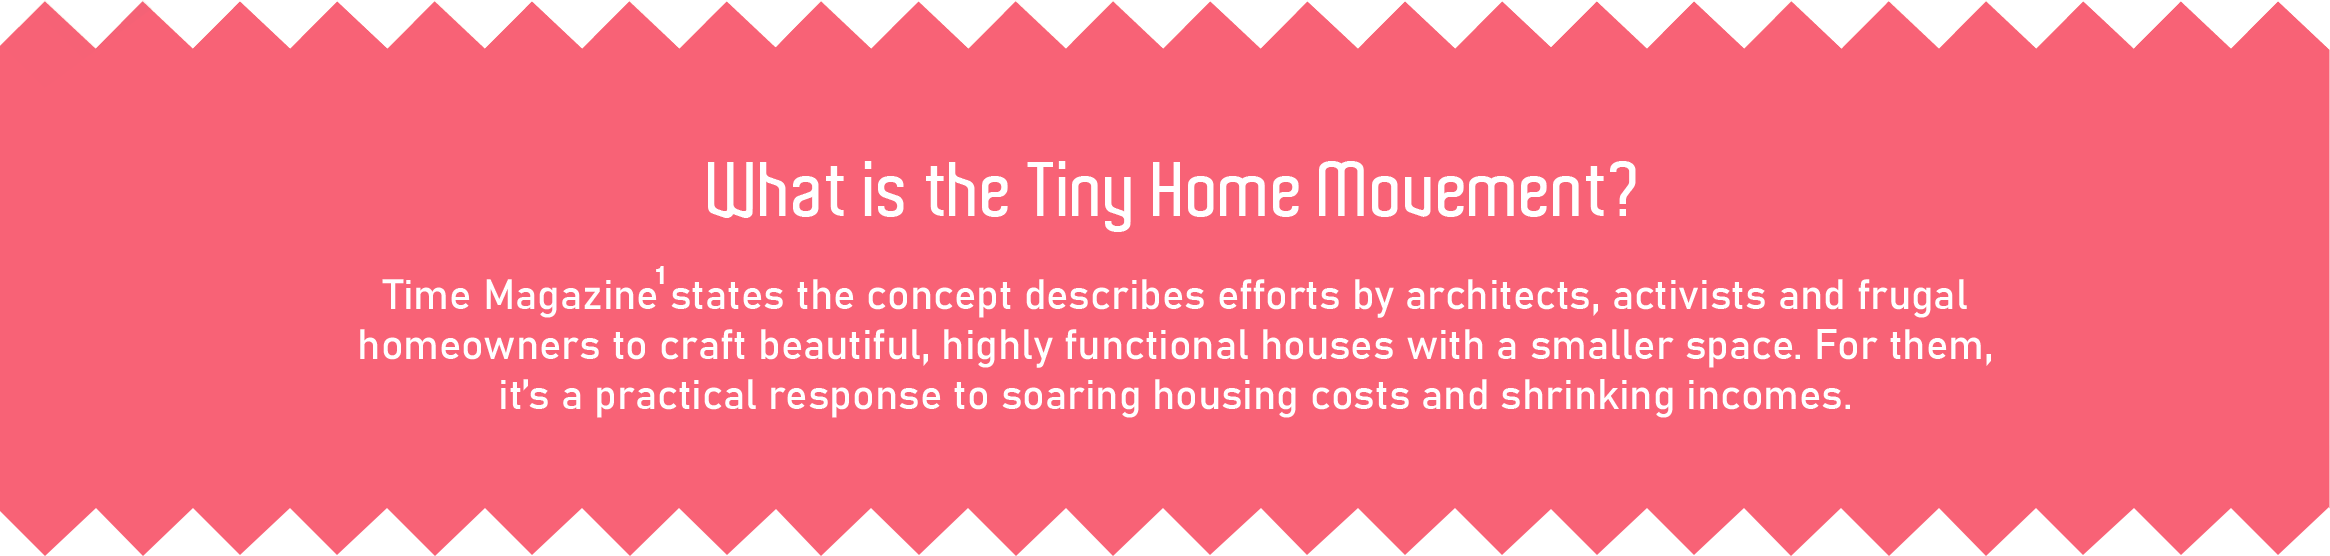 What is the tiny home movement?